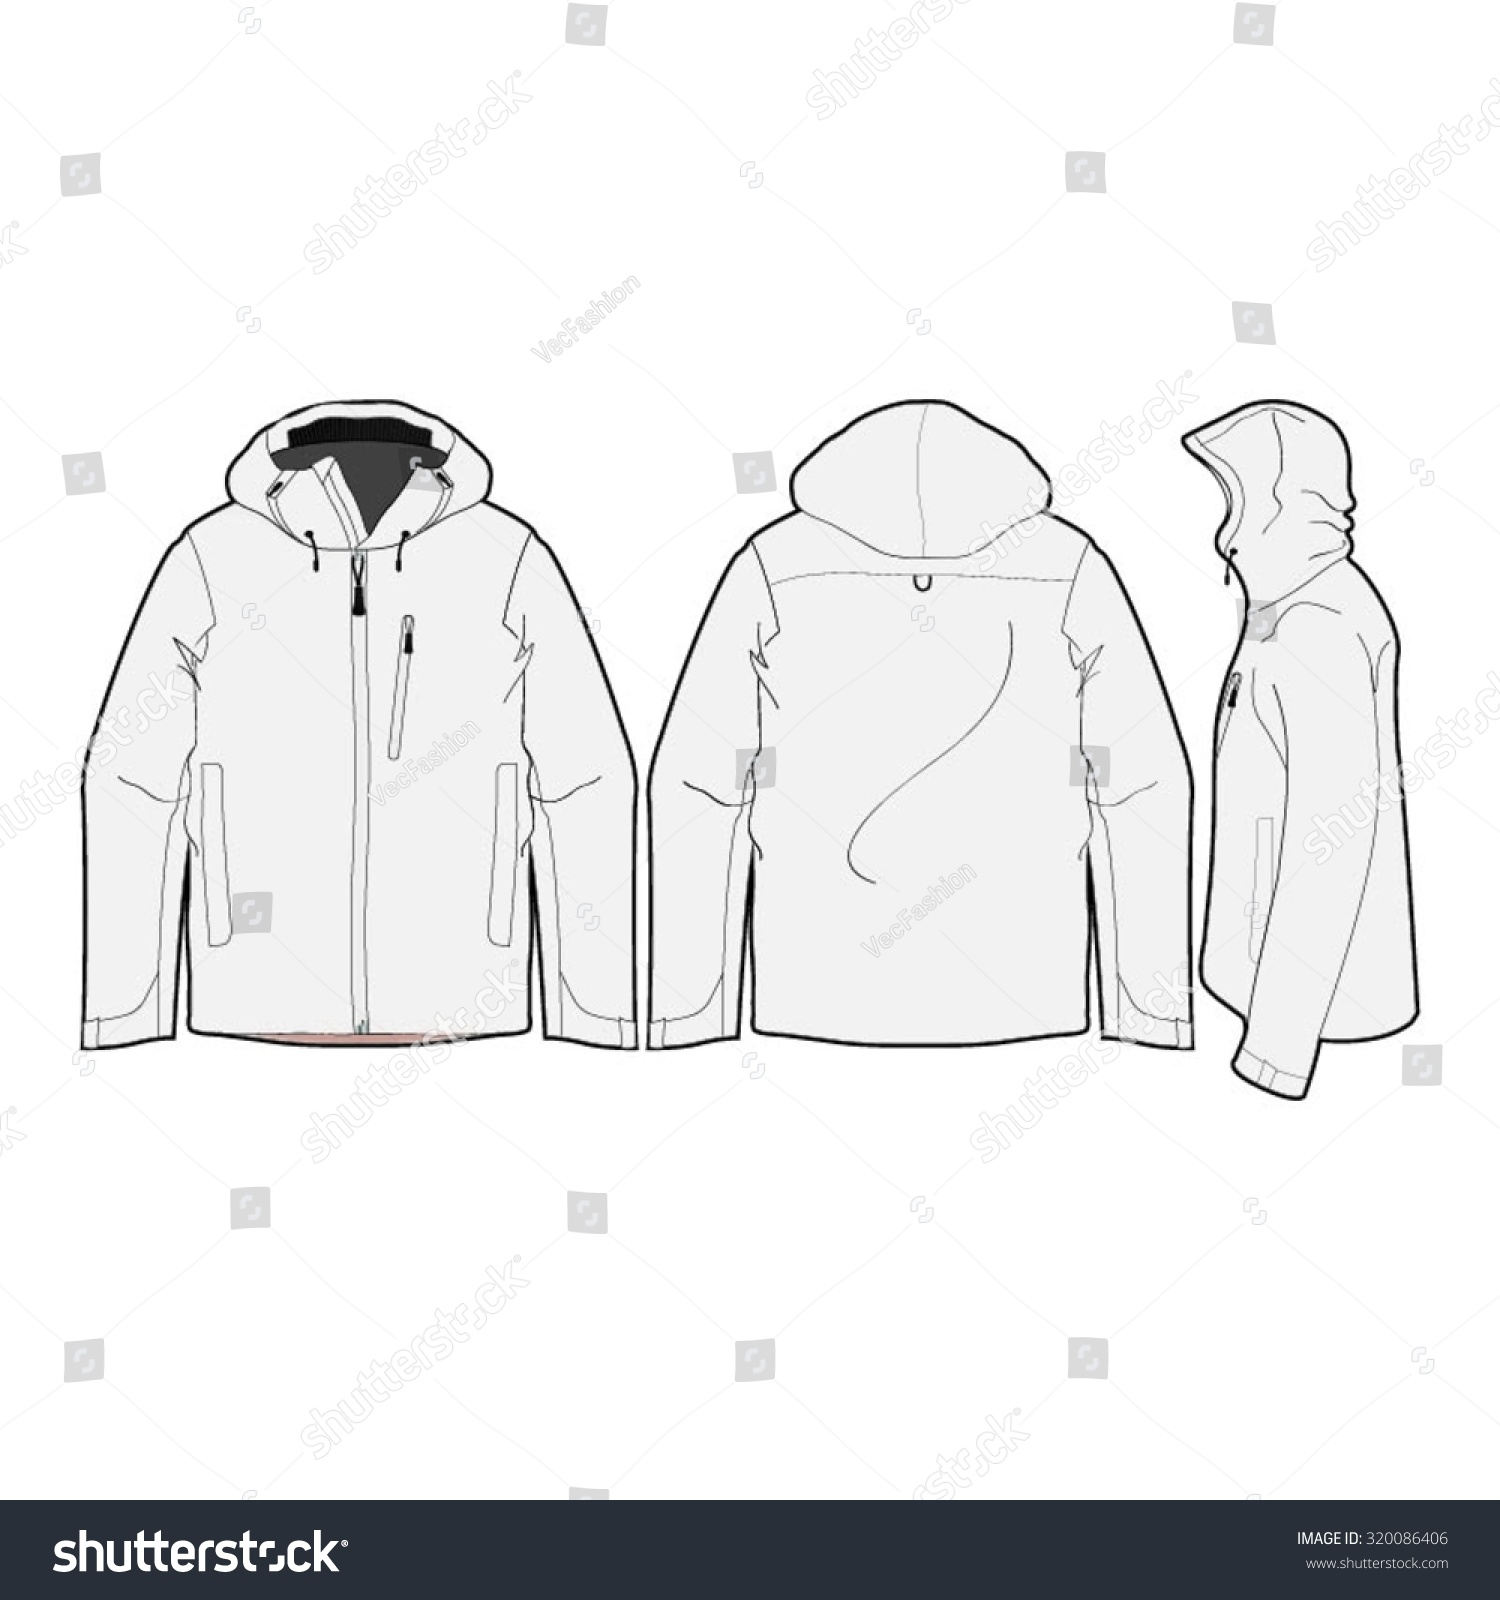 fb1b818f17 Outdoor Climbing Jacket Template 스톡 벡터(사용료 없음) 320086406 ...